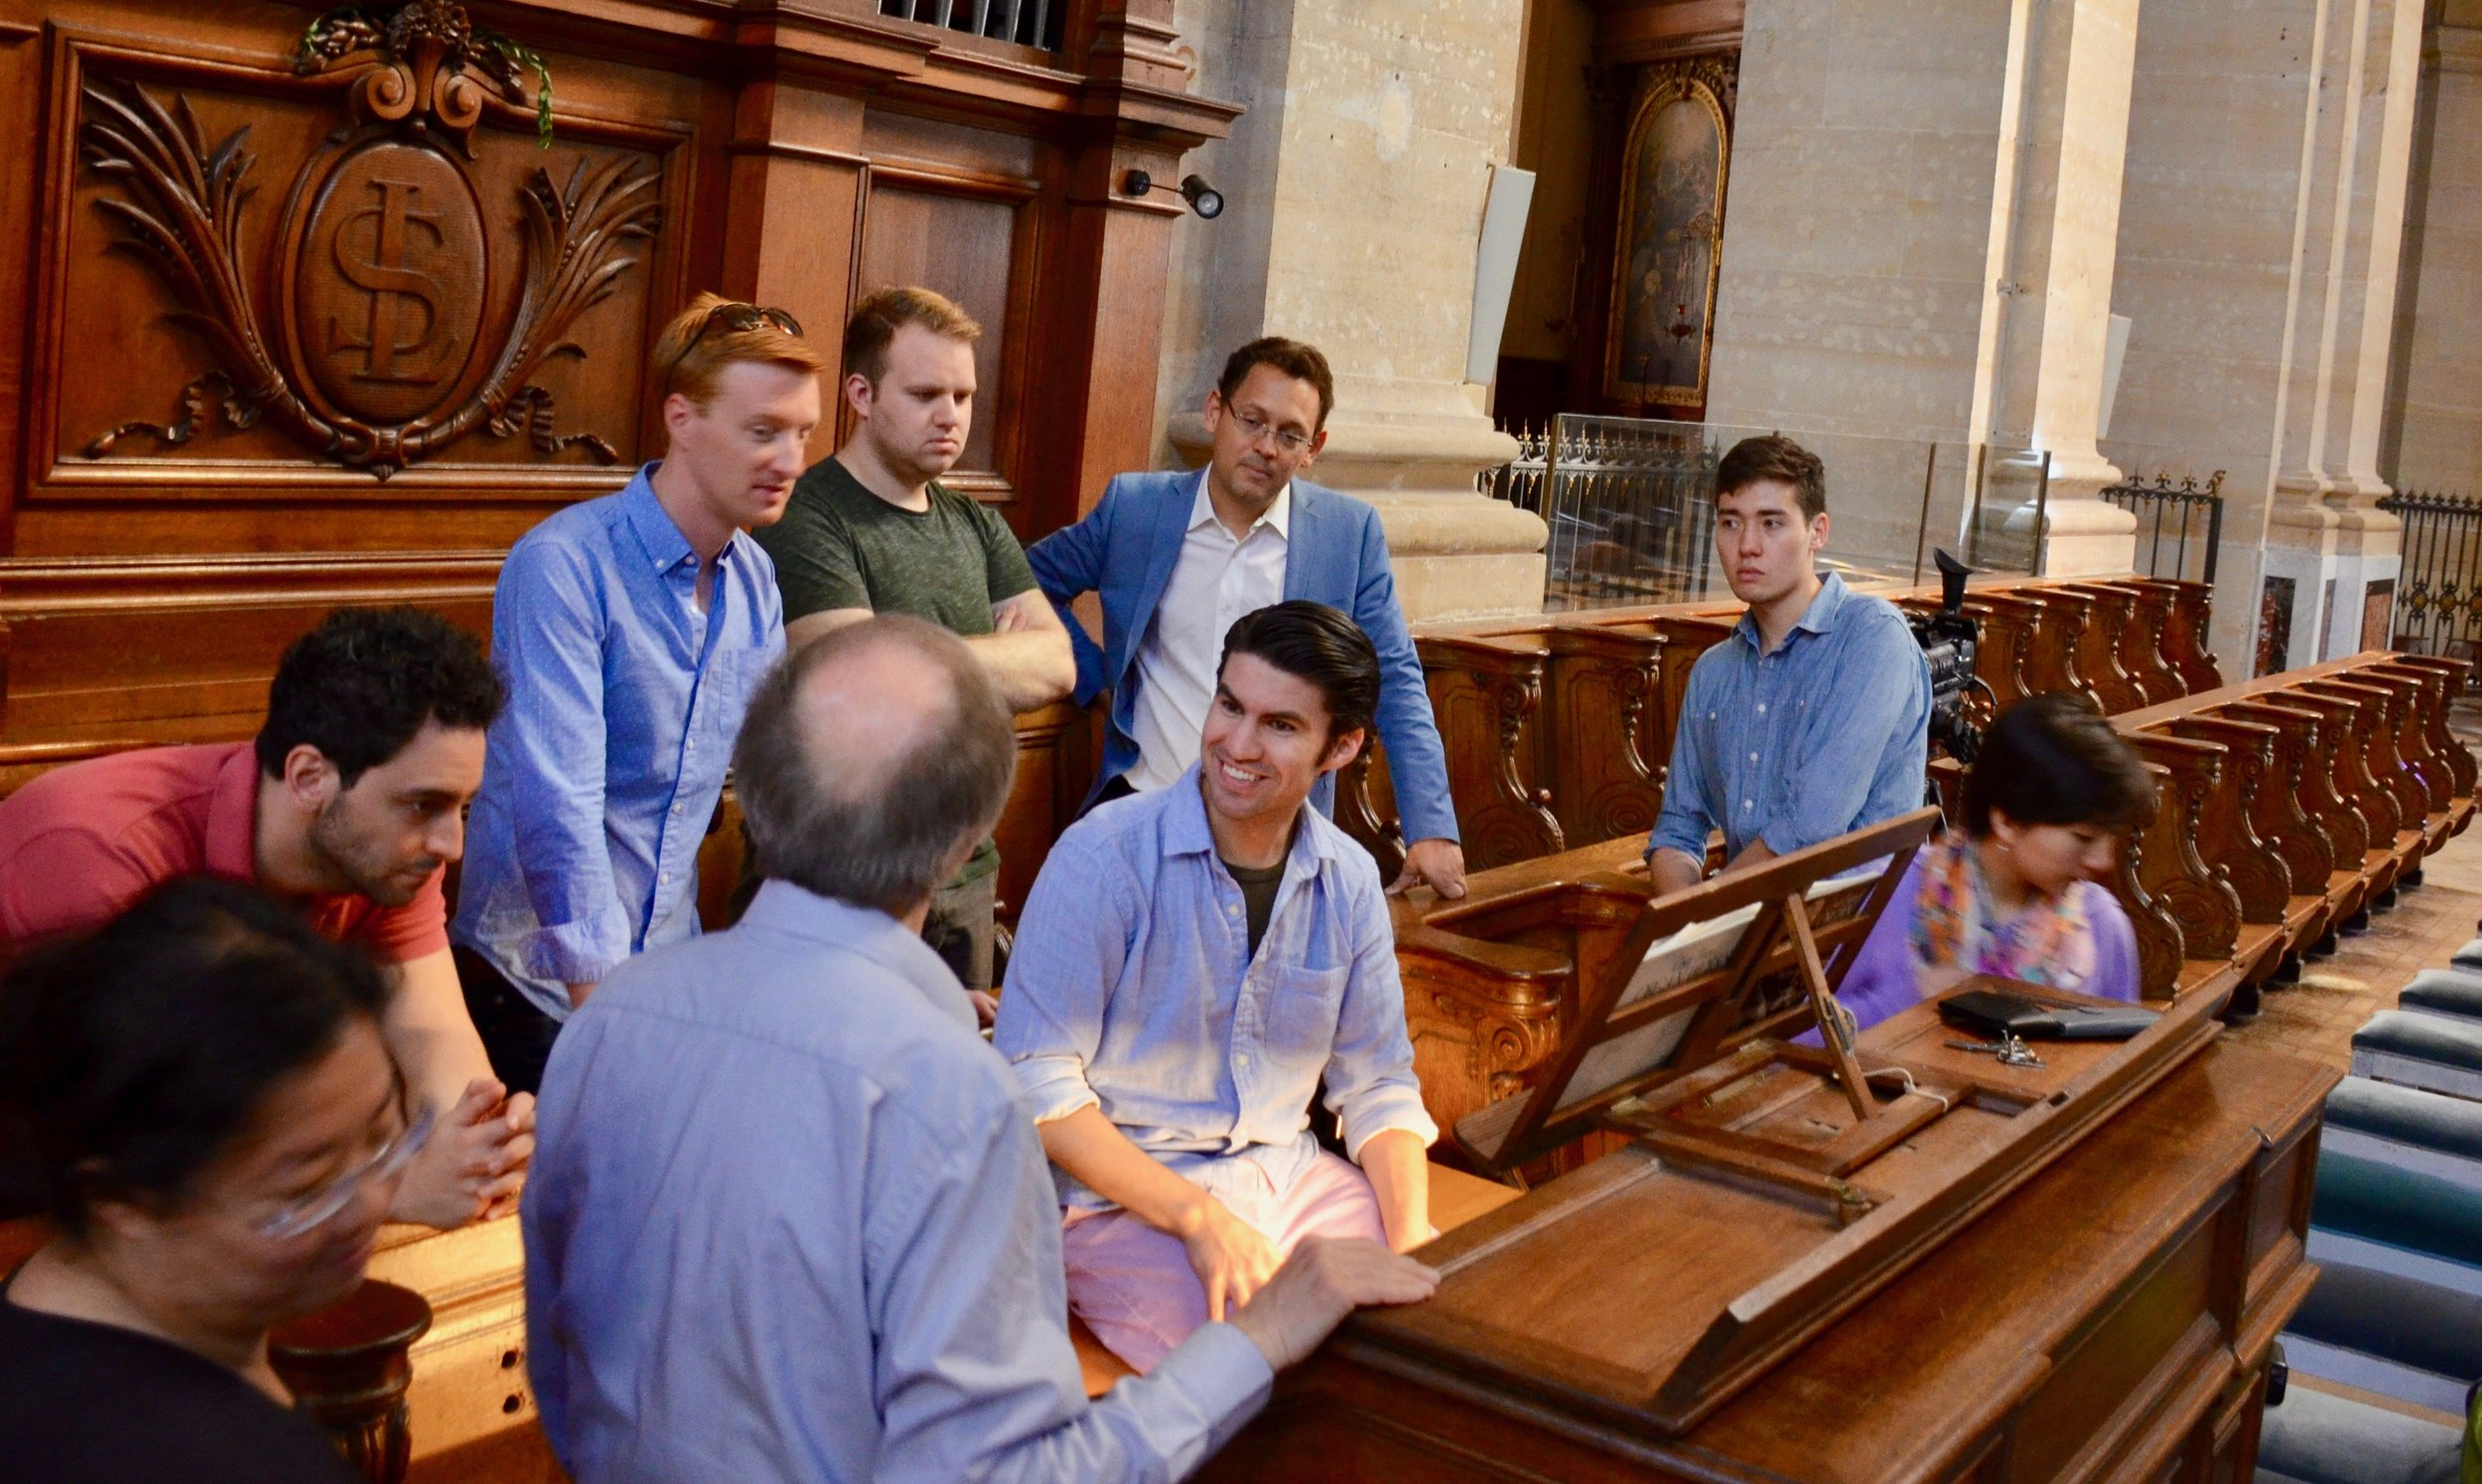 Jean-Pierre Millioud discusses the Choir Organ at Saint Louis in Versailles